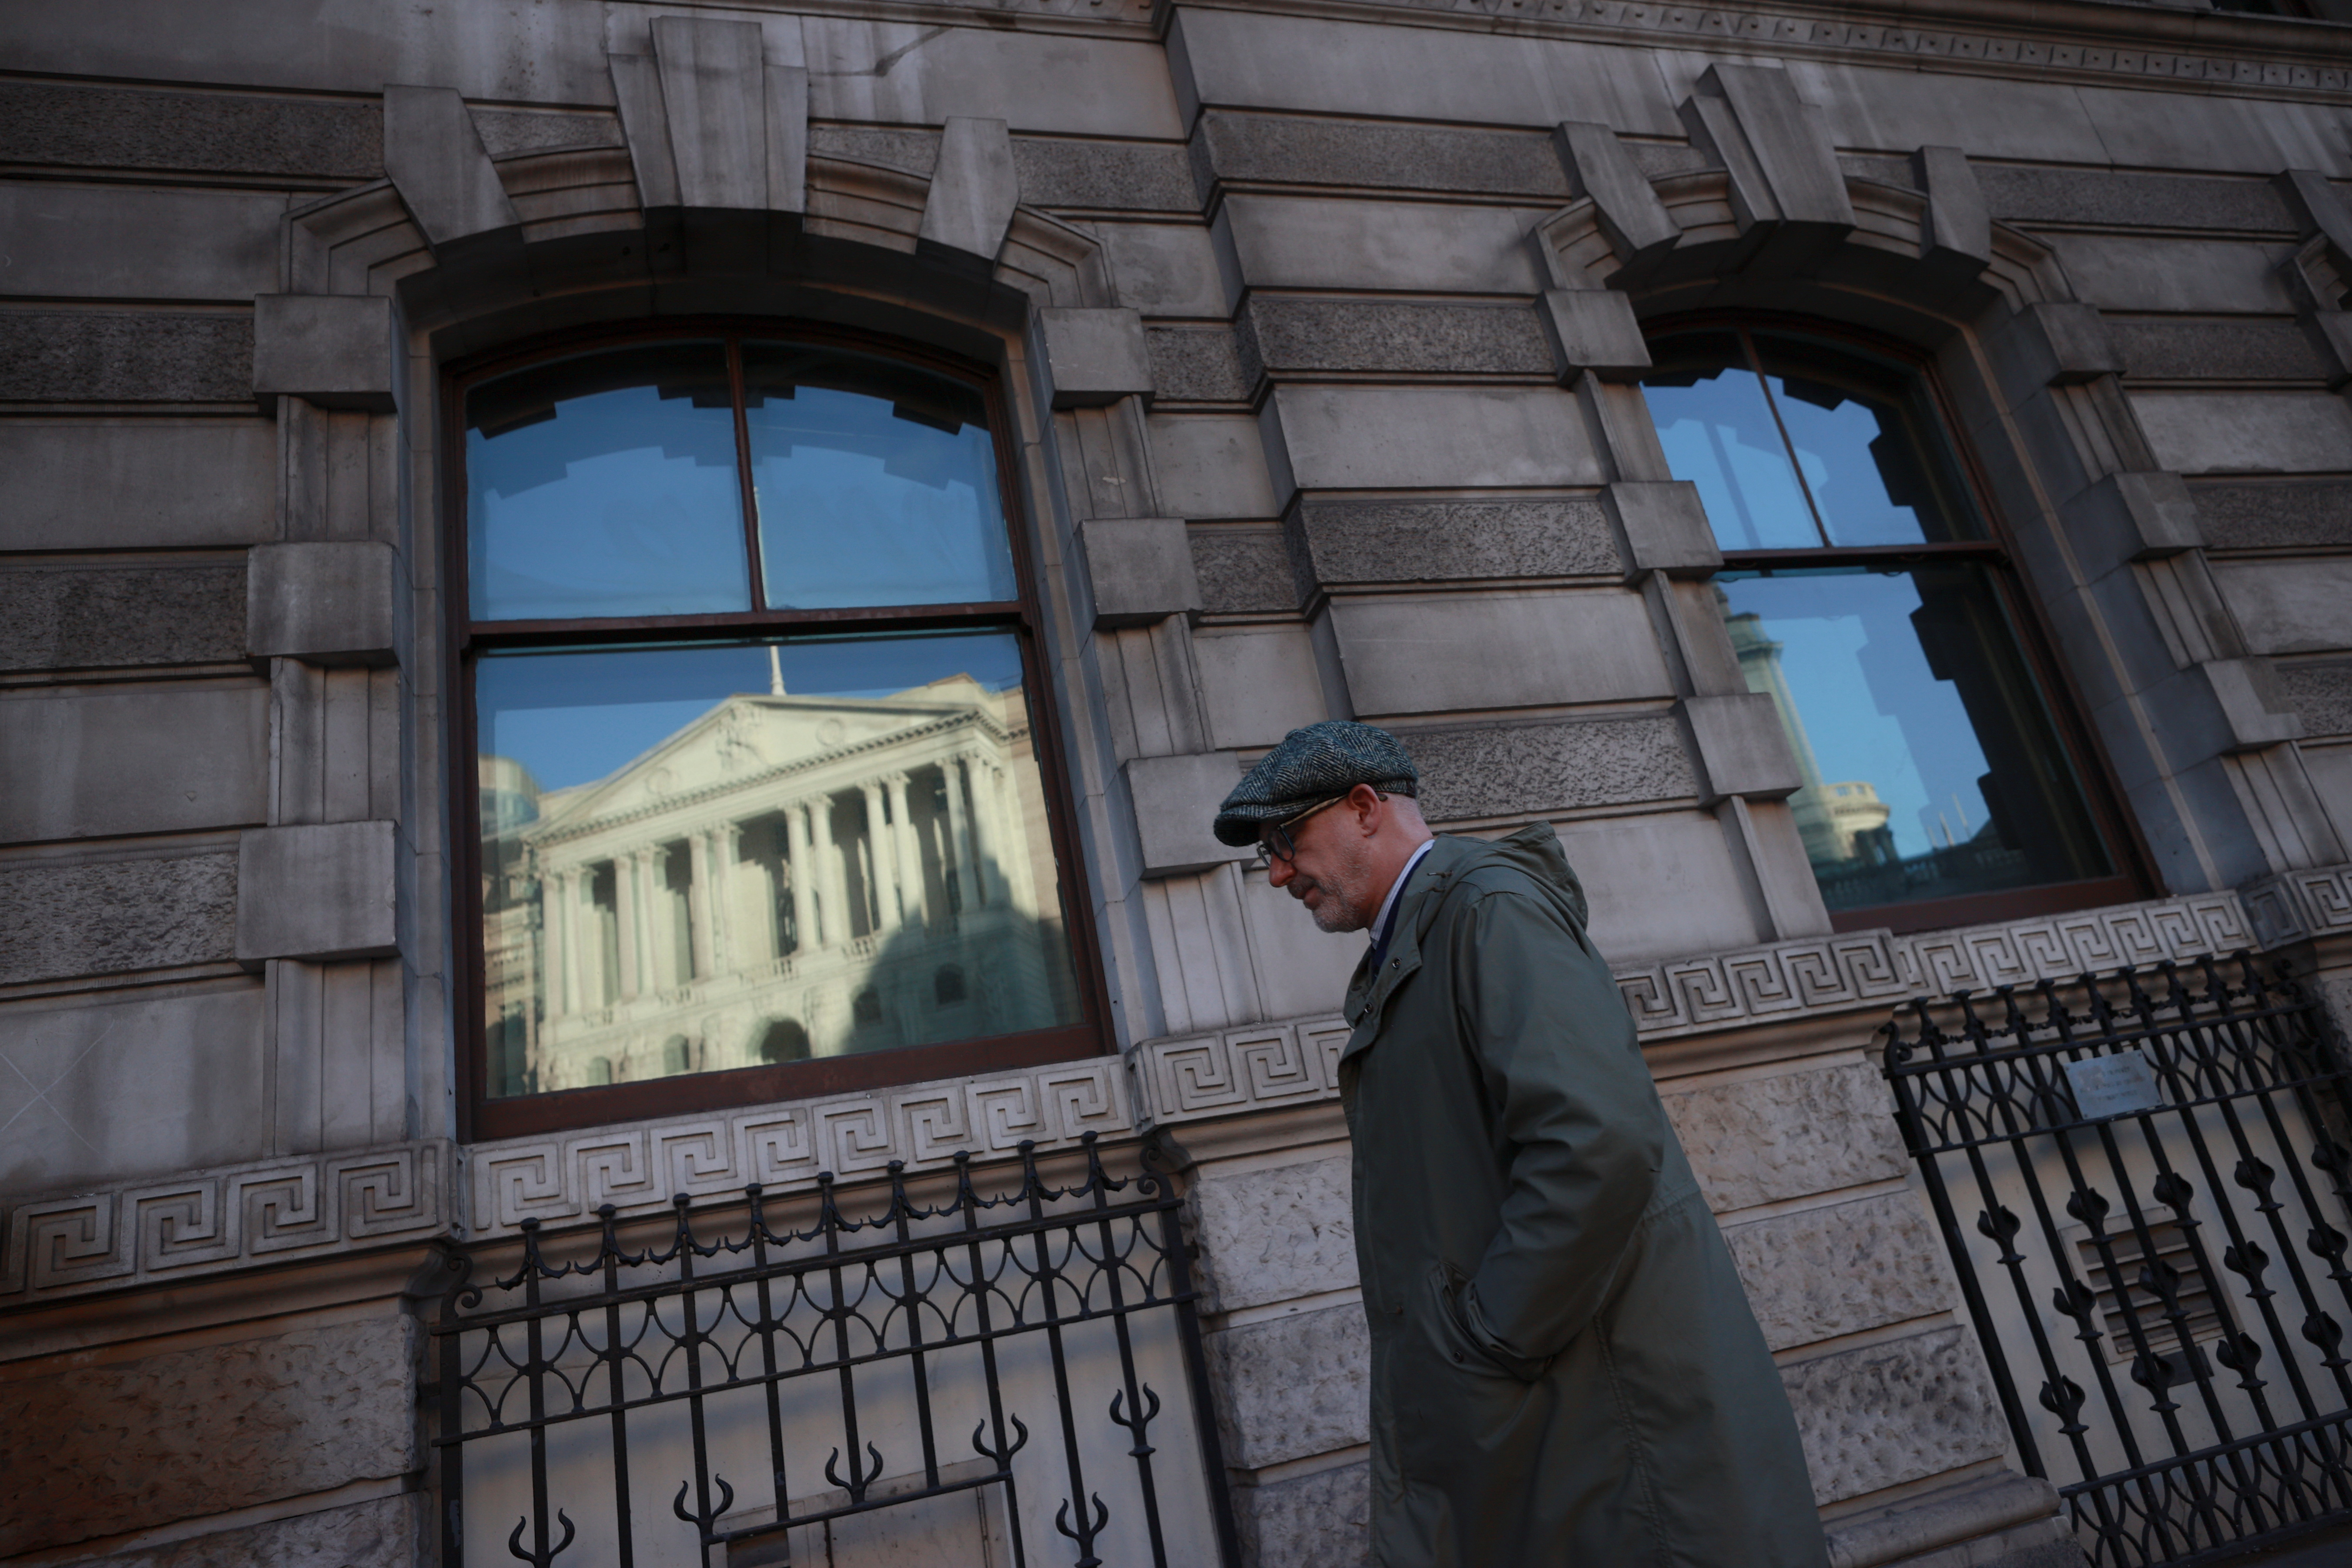 A man walks past a window reflecting the Bank of England, in London, Britain, December 17, 2020. REUTERS/Hannah McKay